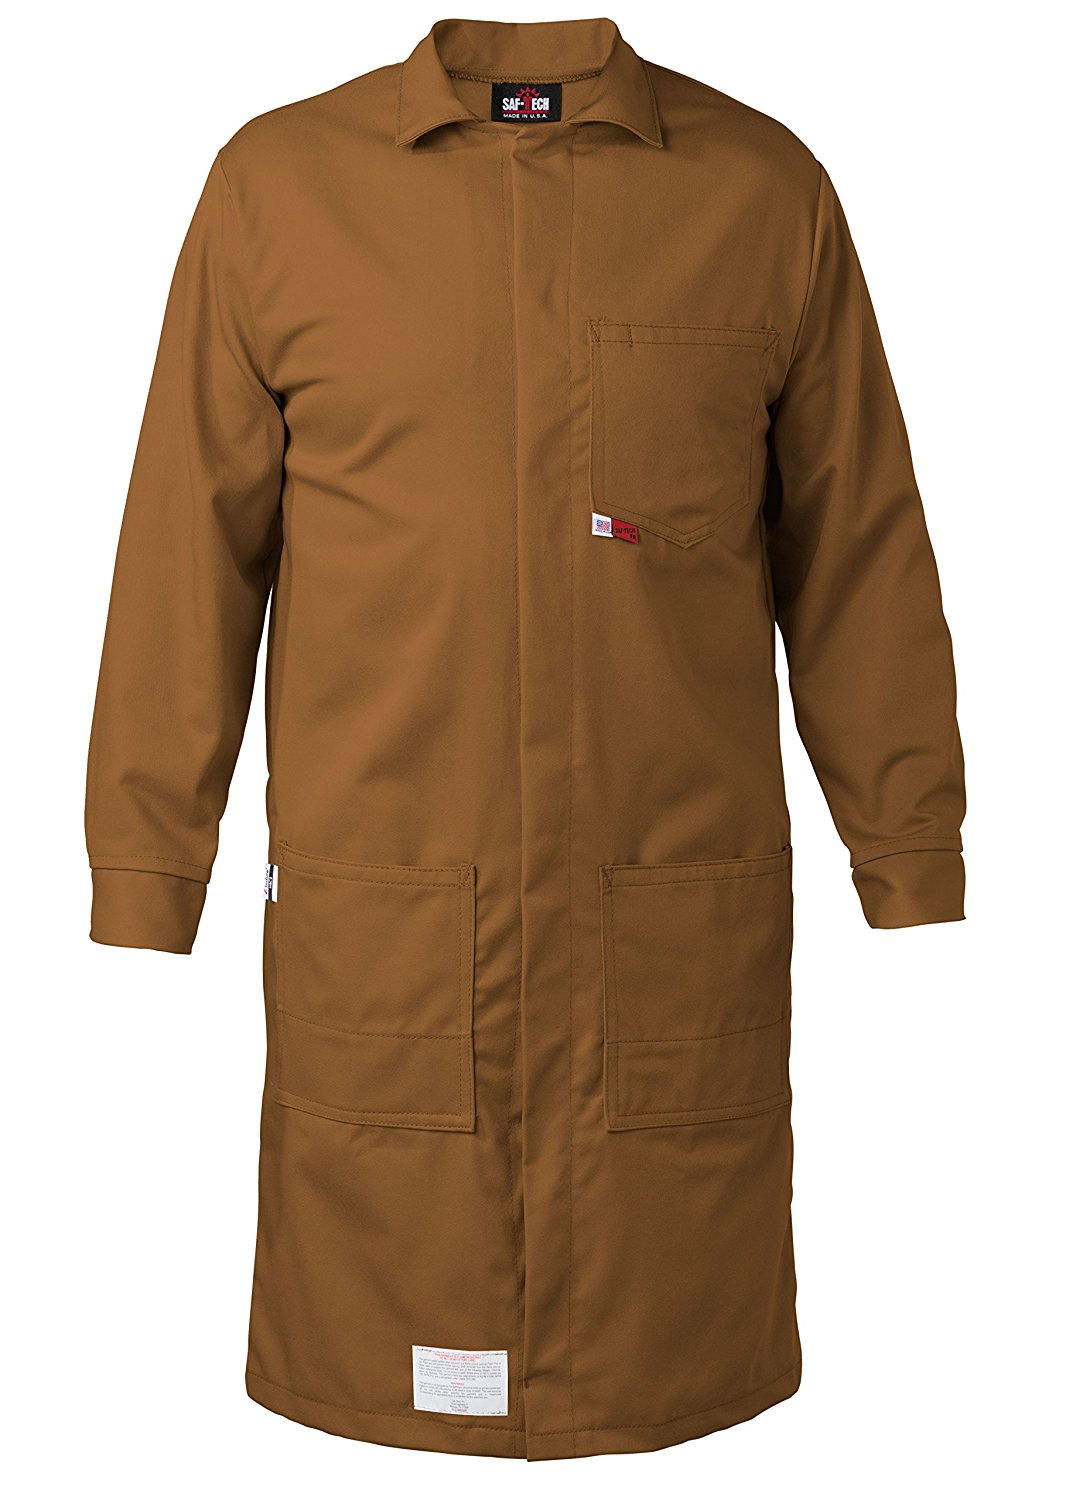 BROWN - SMALL - FR LAB COAT - 6oz. NOMEX III3 Flame Resistant Fabric - Lab or Classroom Ready - HRC 1 - APTV= 5.7 cal/m2 - MADE IN THE U.S.A.